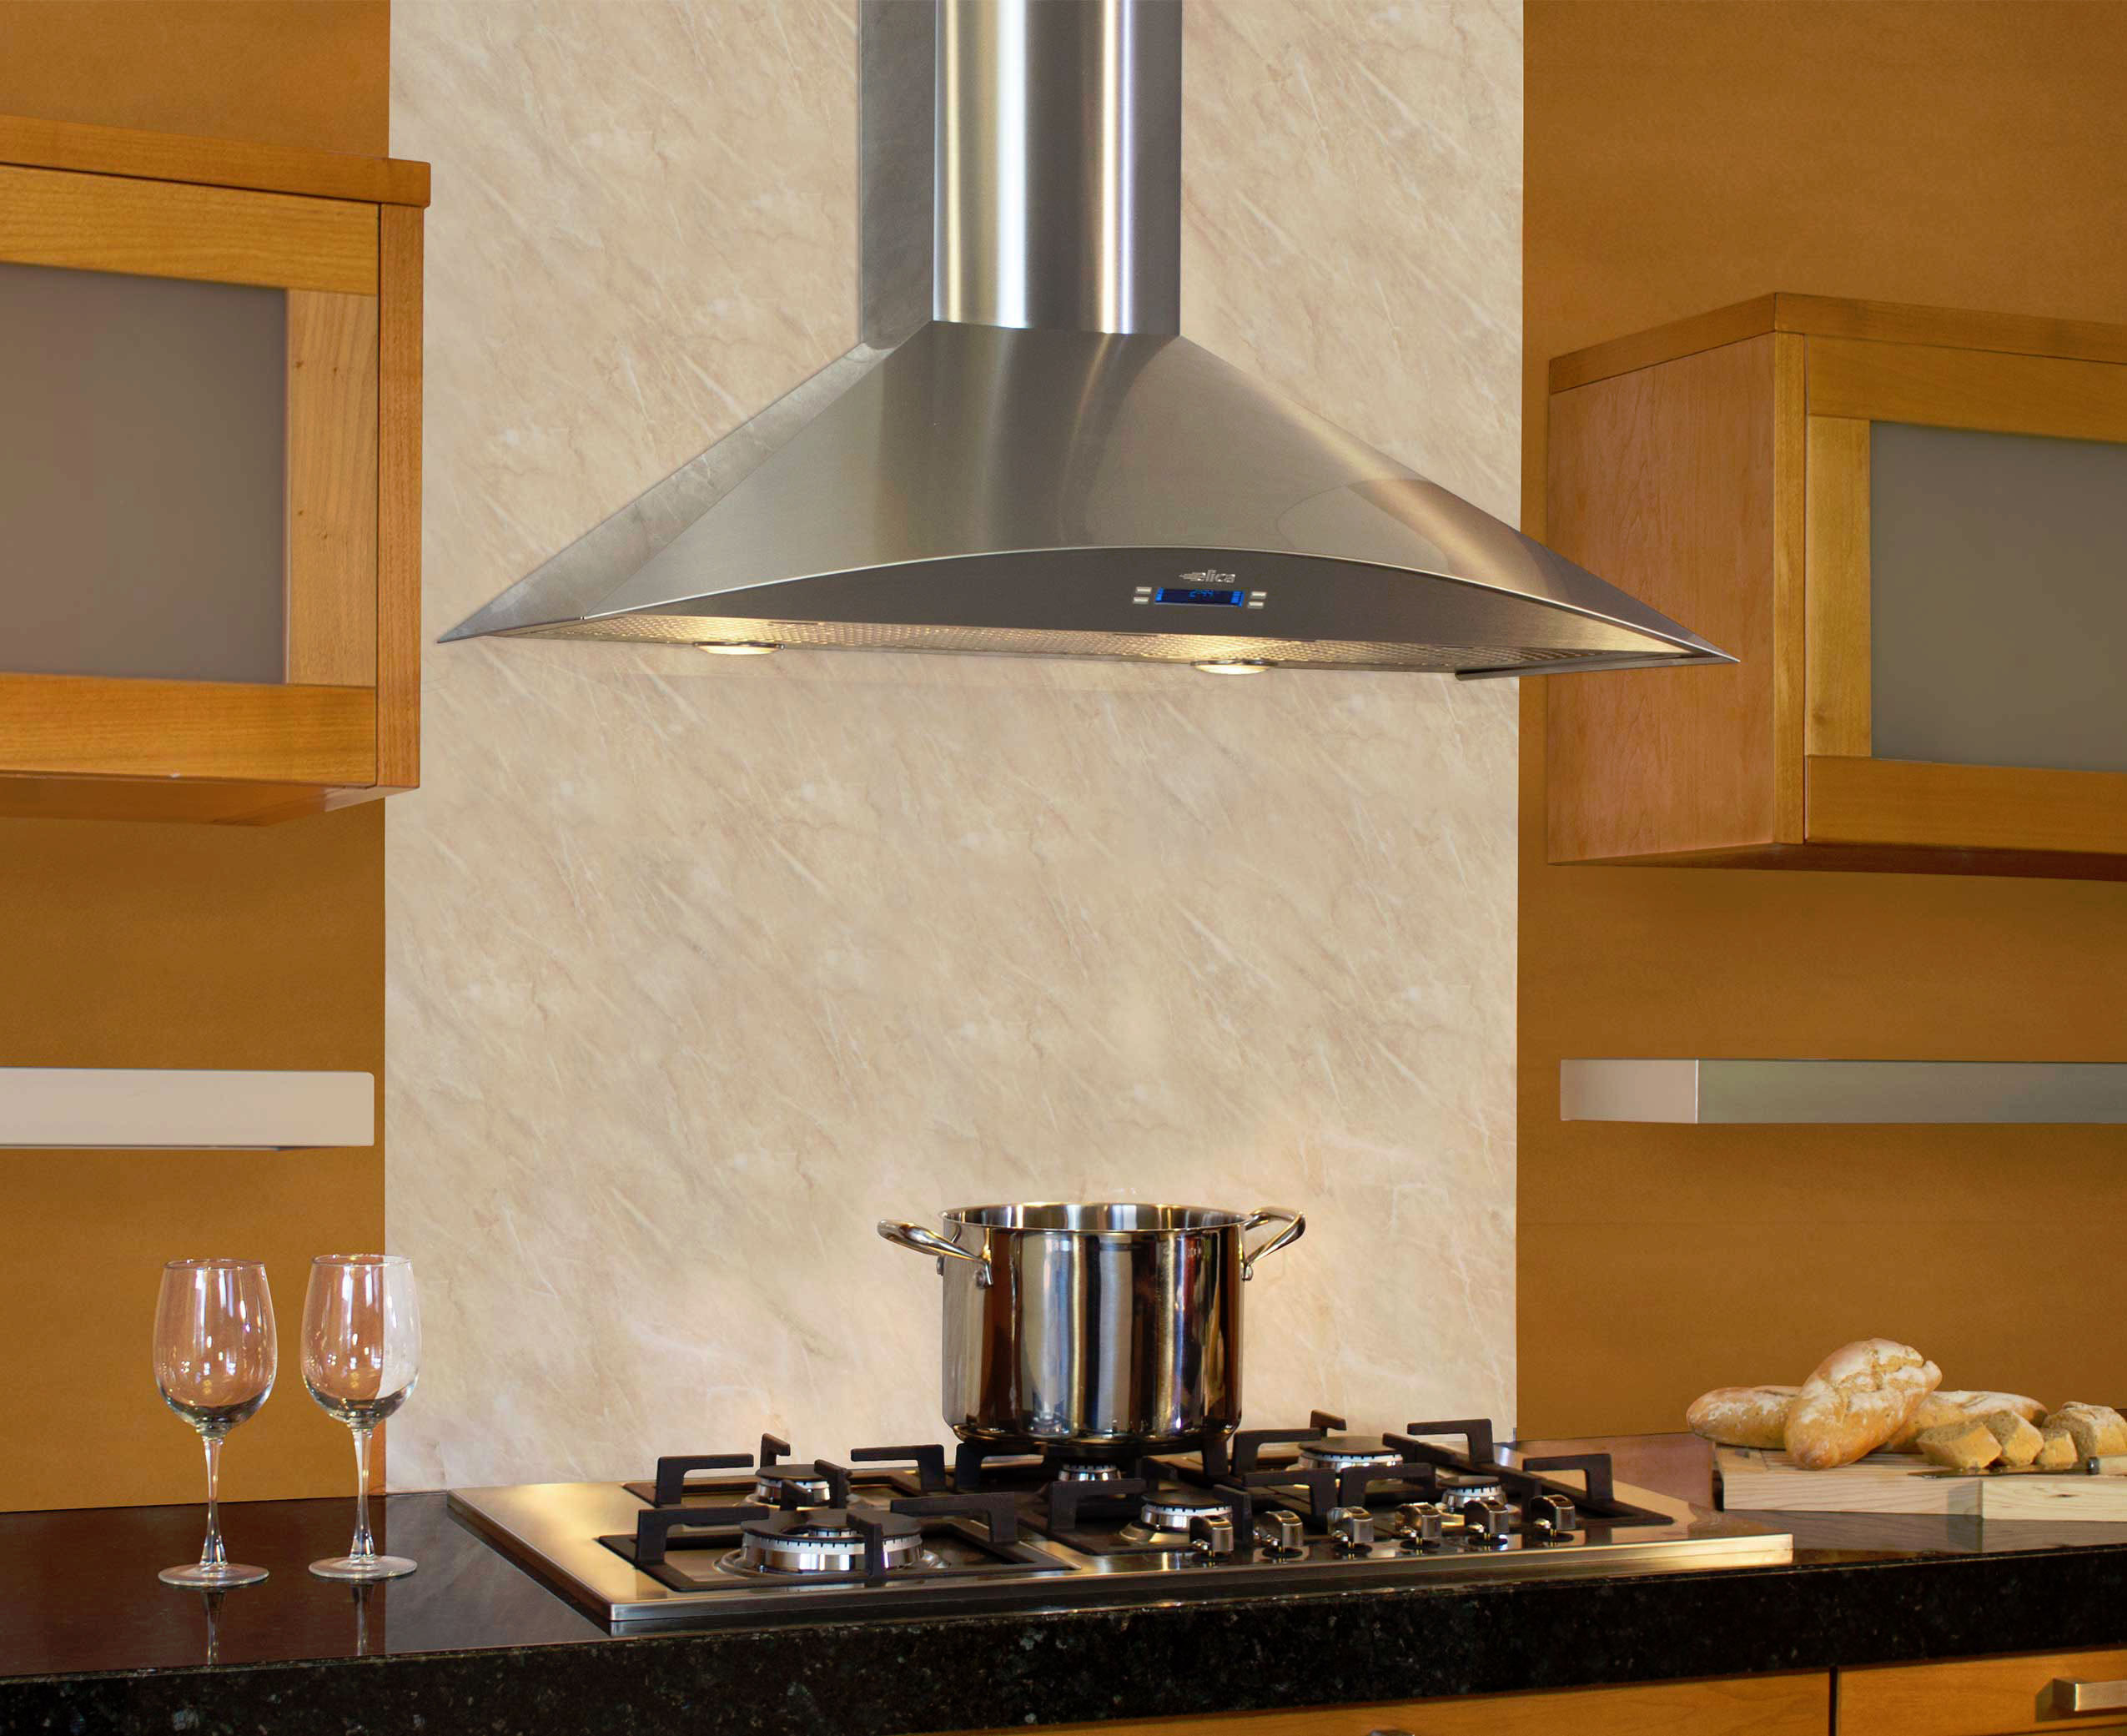 Elica Efg630sm Wall Mount Chimney Hood With 600 Cfm Internal